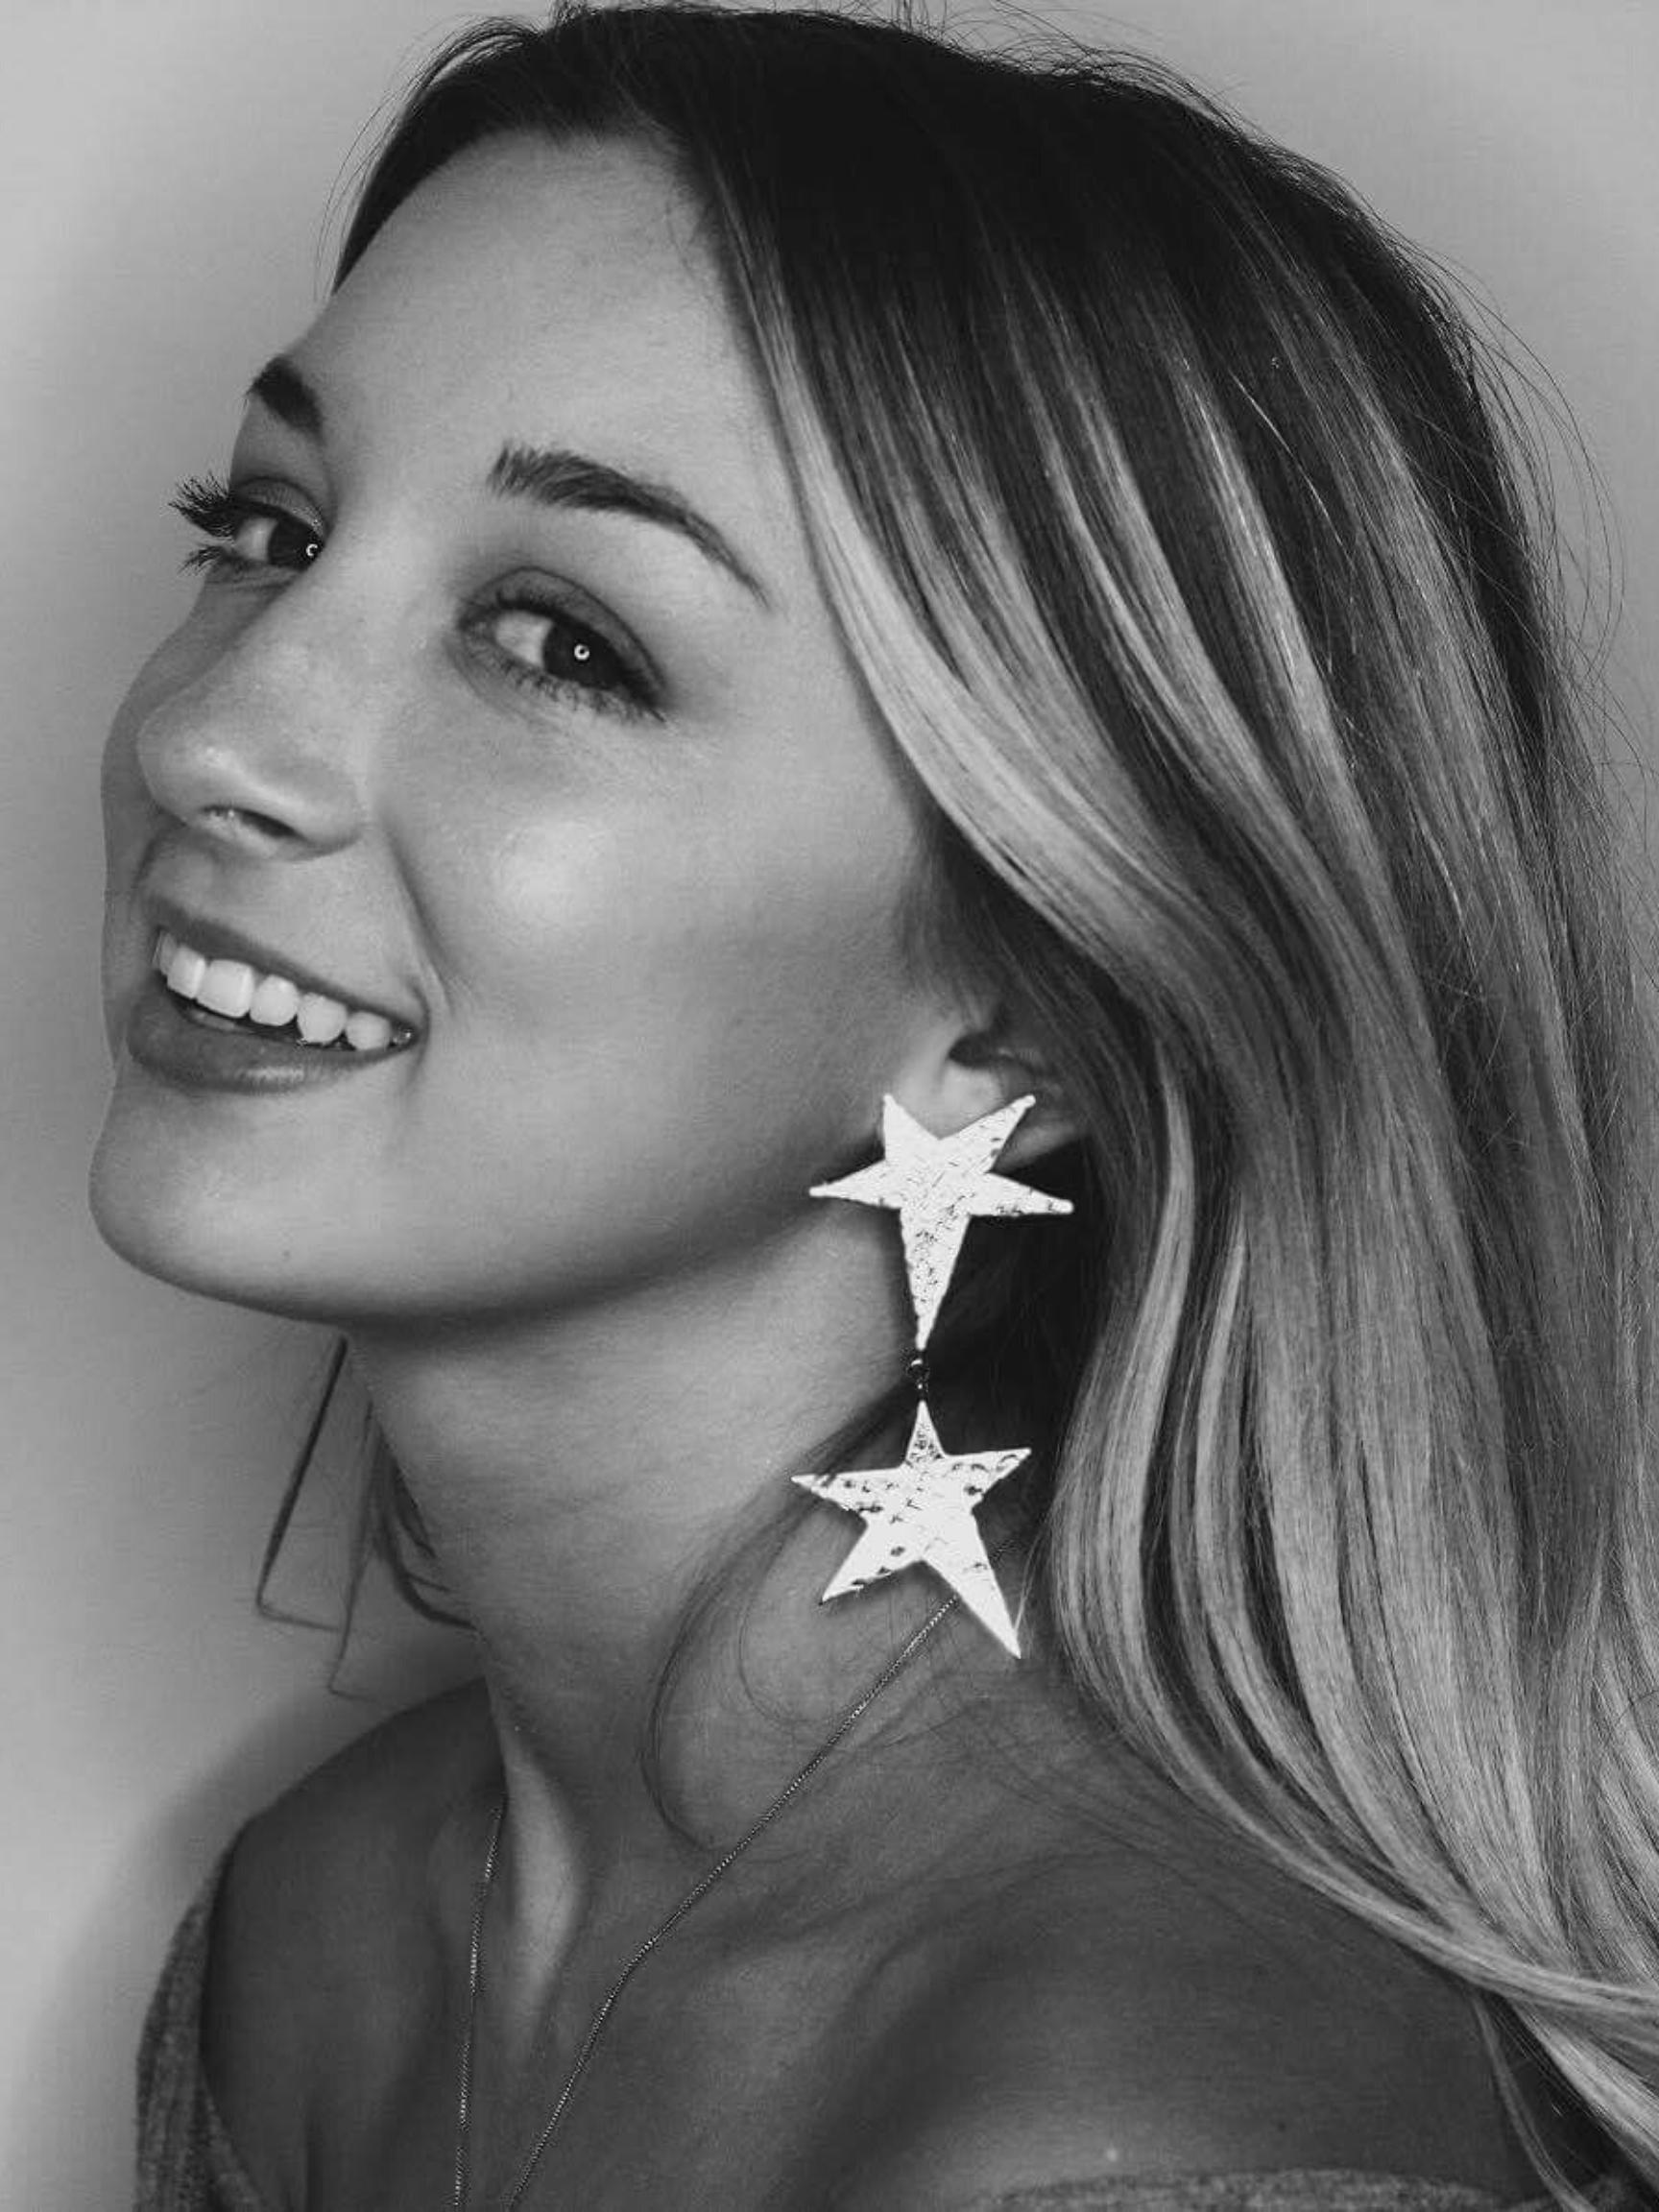 Silver Shooting Star Dangle Clip Earrings-Earrings-JAREDJAMIN Jewelry Online-JAREDJAMIN - Fashion Jewelry & Accessories